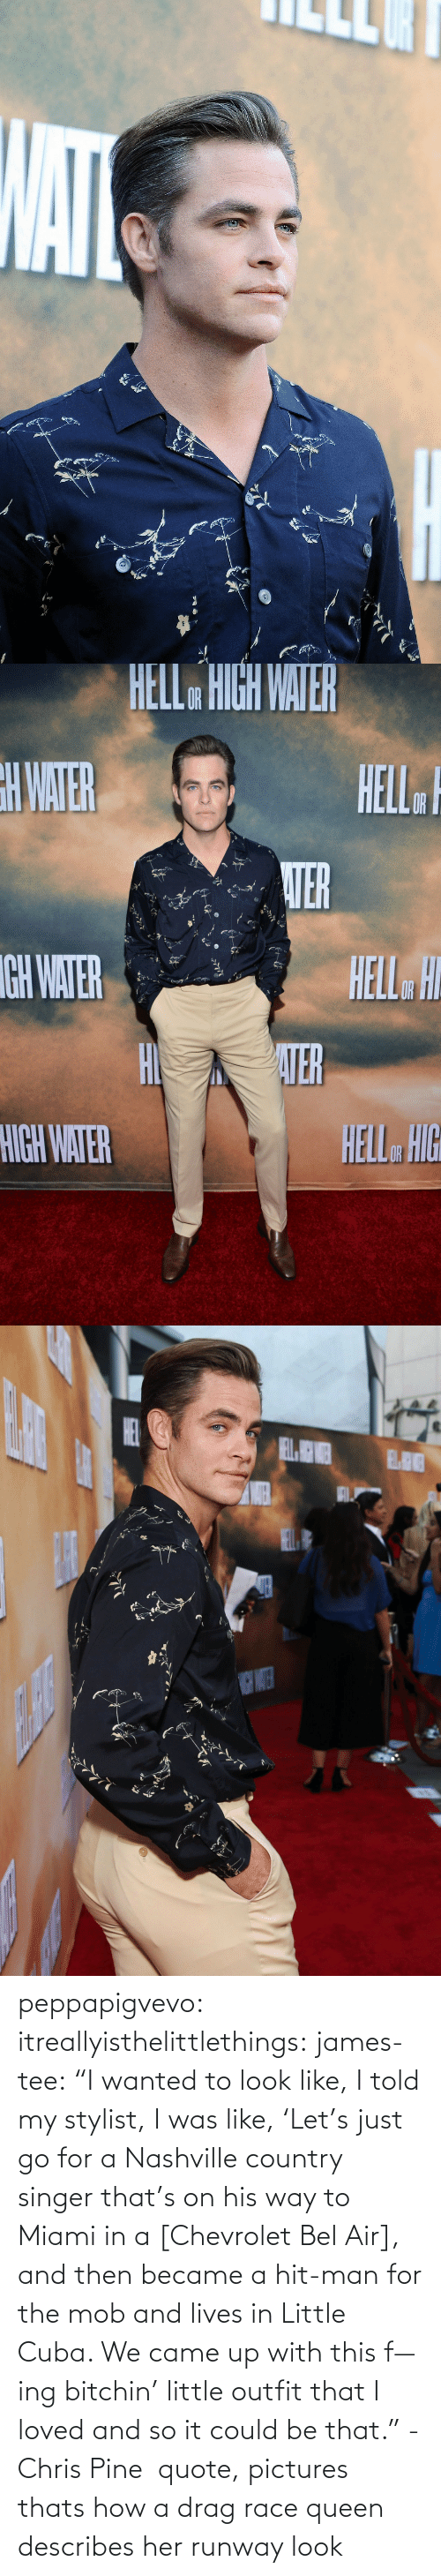 "Chris Pine, Fake, and Gif: peppapigvevo:  itreallyisthelittlethings:  james-tee:  ""I wanted to look like, I told my stylist, I was like, 'Let's just go for a Nashville country singer that's on his way to Miami in a [Chevrolet Bel Air], and then became a hit-man for the mob and lives in Little Cuba. We came up with this f—ing bitchin' little outfit that I loved and so it could be that."" - Chris Pine  quote, pictures        thats how a drag race queen describes her runway look"